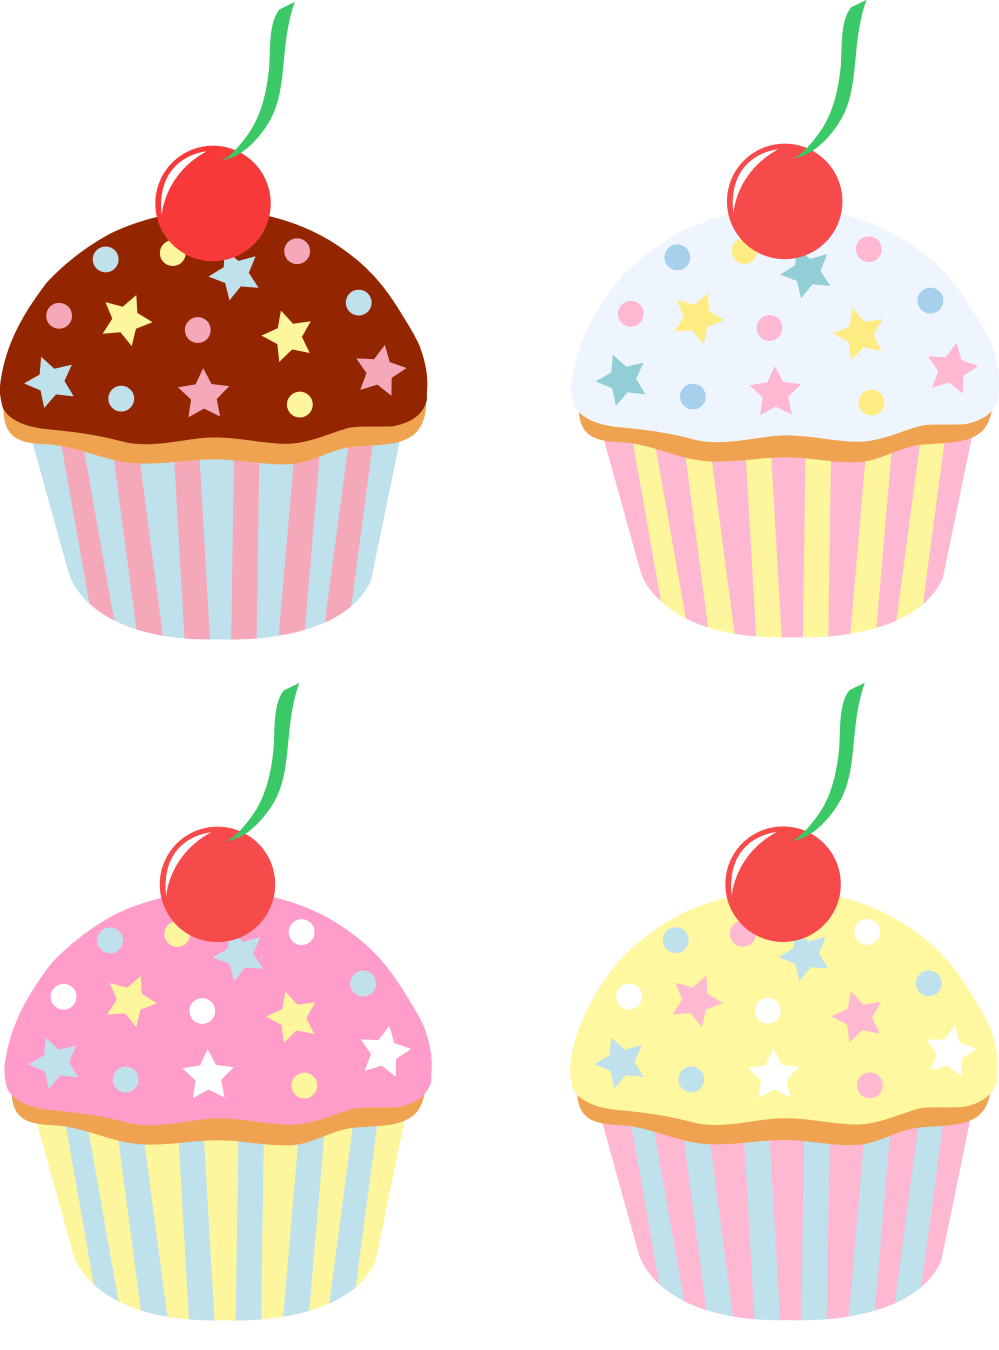 medium resolution of 5400x7295 four cupcakes with cherries and sprinkles